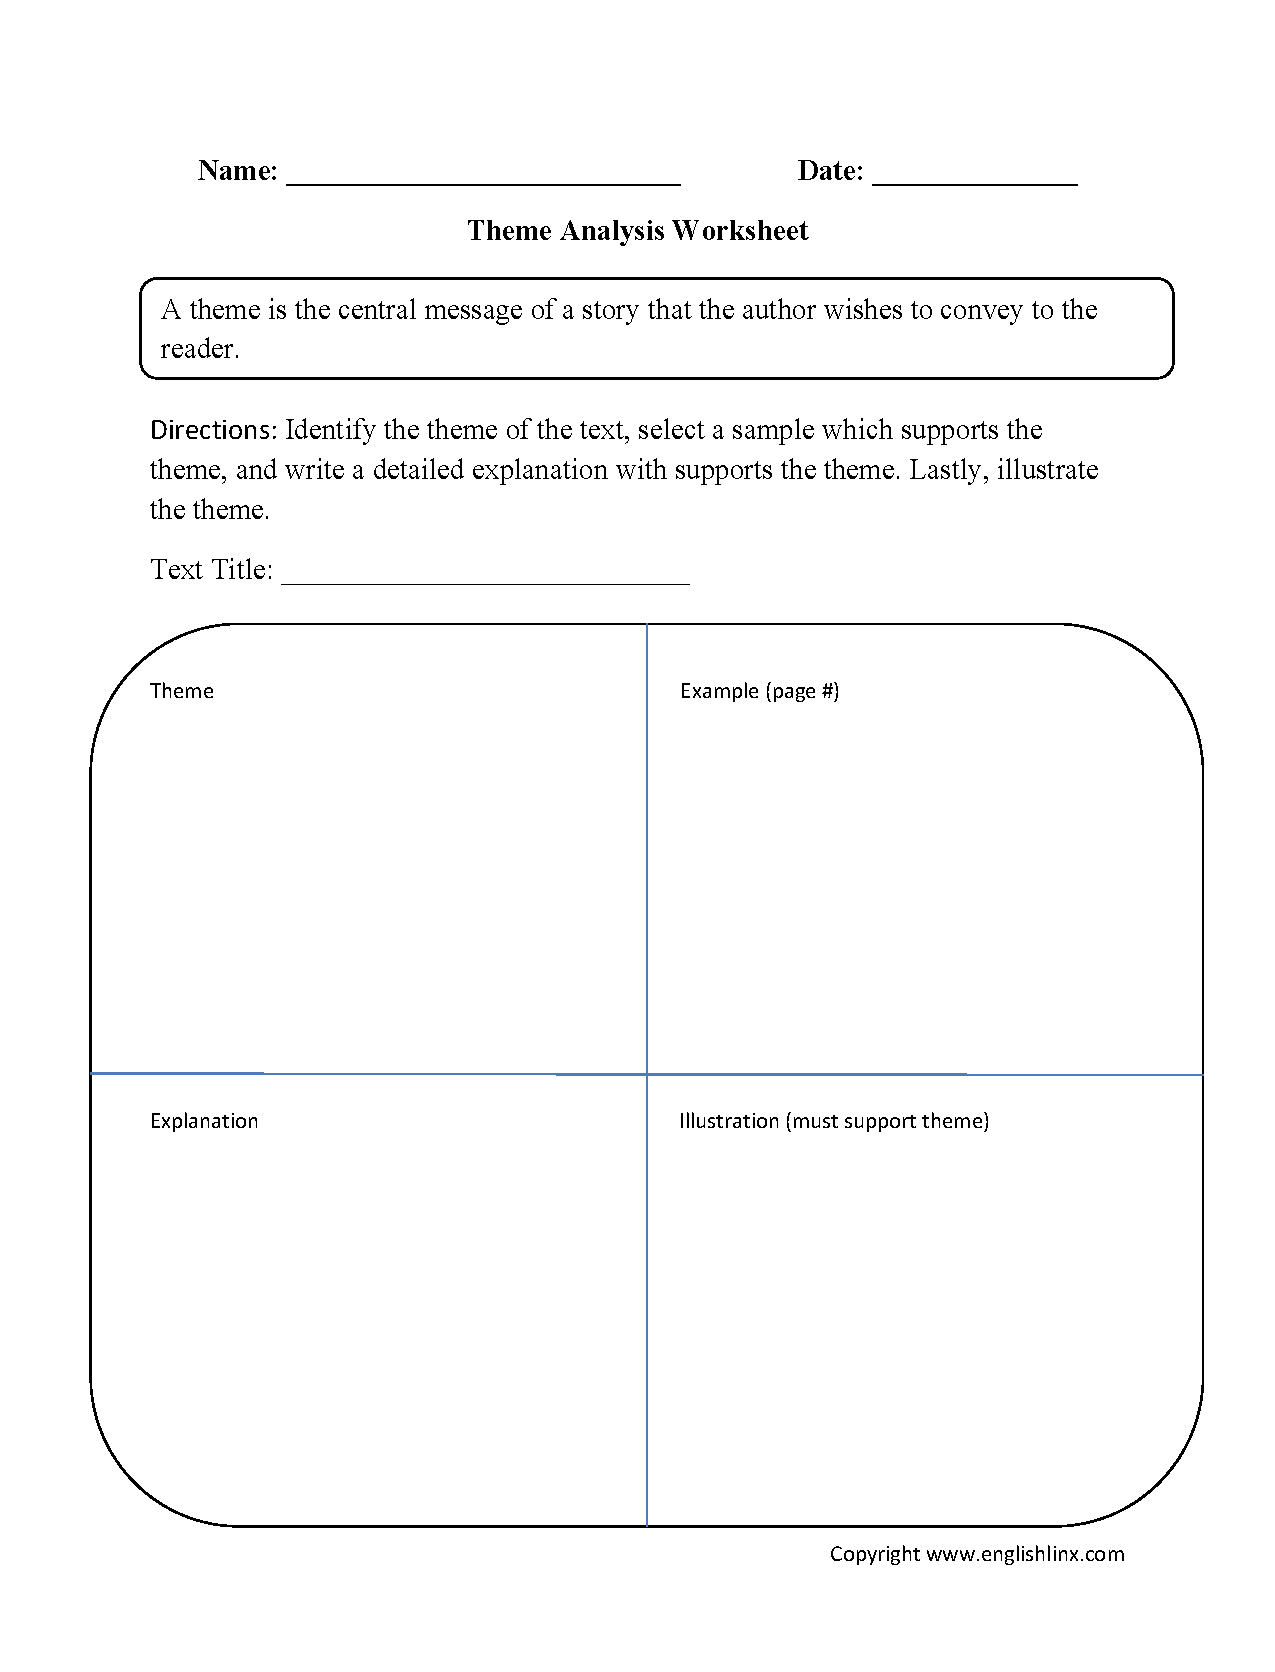 theme analysis worksheet education language arts this theme worksheet instructs the student to analyze the theme of a given text the student will analyze how the theme interacts the text